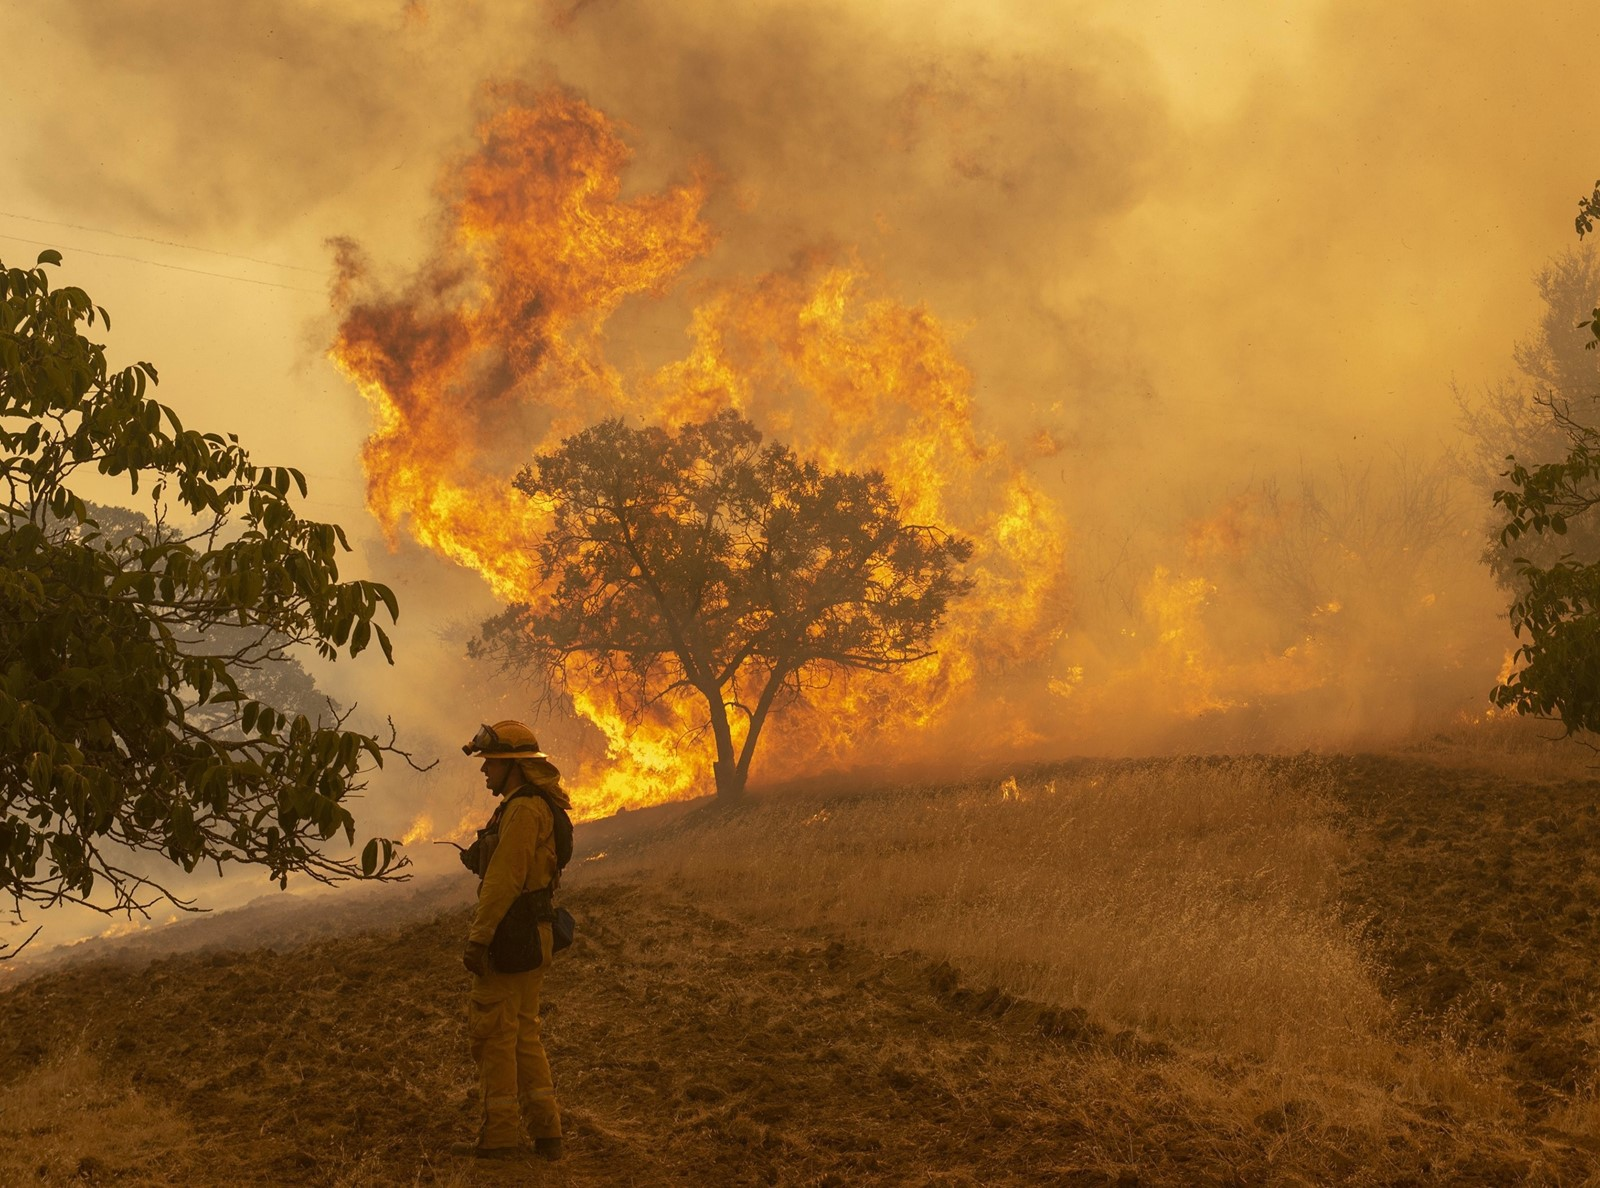 Firefighter Wyatt Belden from Gold Ridge Fire Protection in Sonoma County monitors a blaze west of Lakeport, California. — Photograph: Jose Luis Villegas/Sacramento Bee.